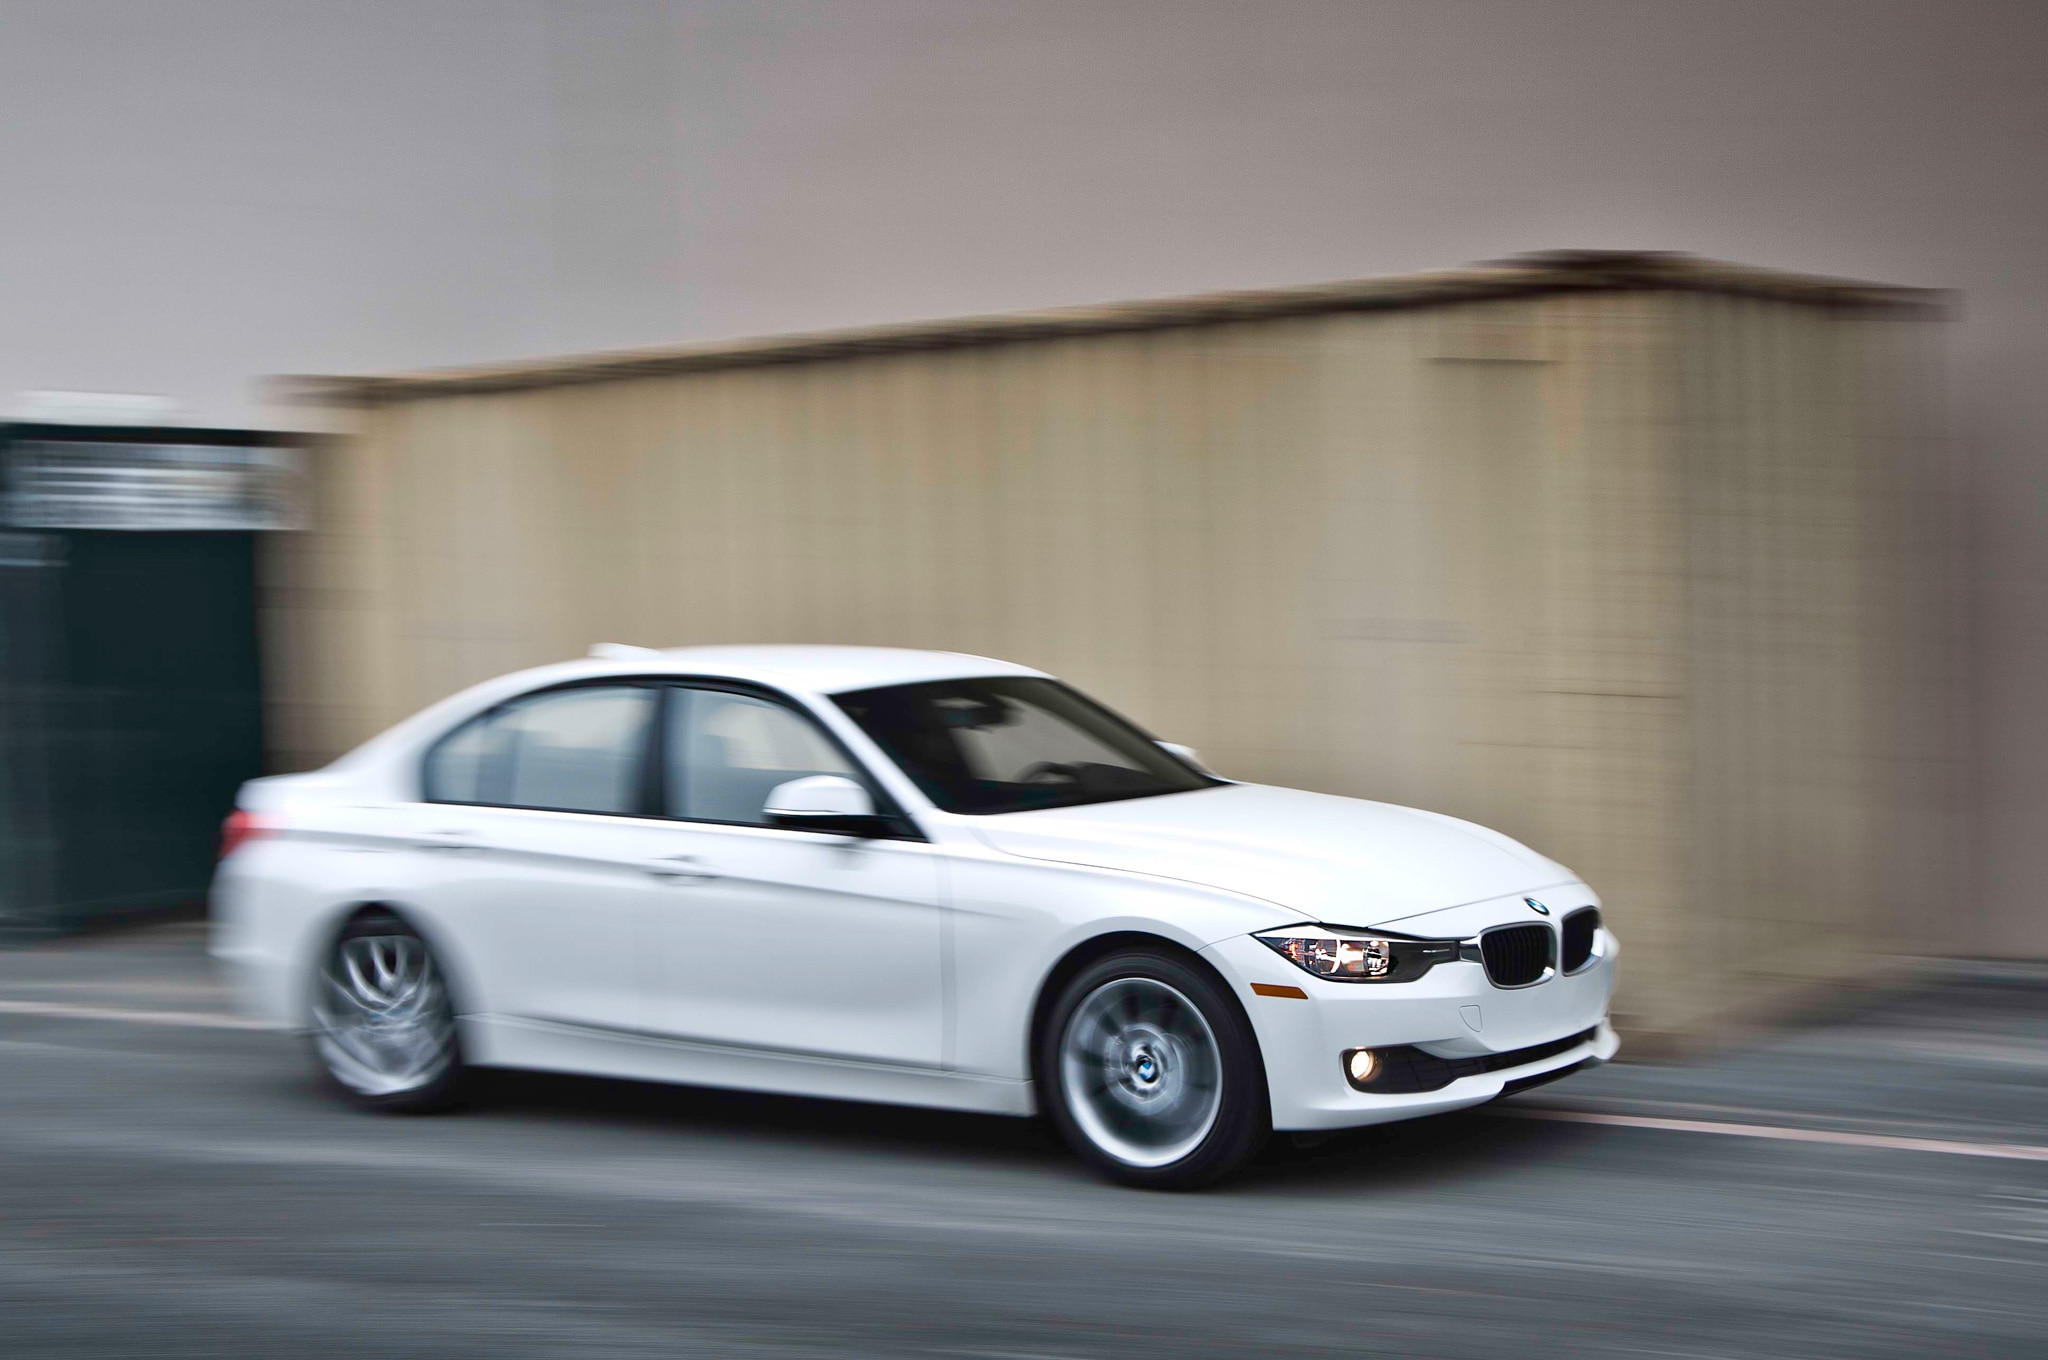 com 320 The bmw 320 is a sedan great for luxury shoppers carscom has the features of every 320 model year -- see if it's right for you.